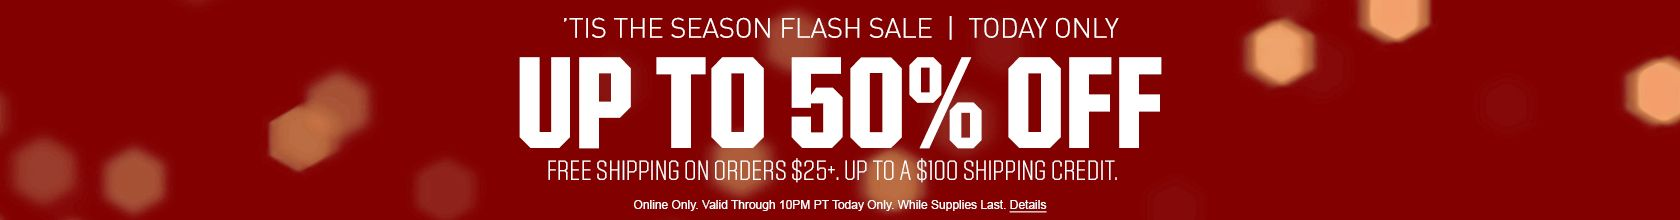 'Tis The Season Flash Sale | Today Only - Up to 50% Off - Free Shipping On Orders of $25+